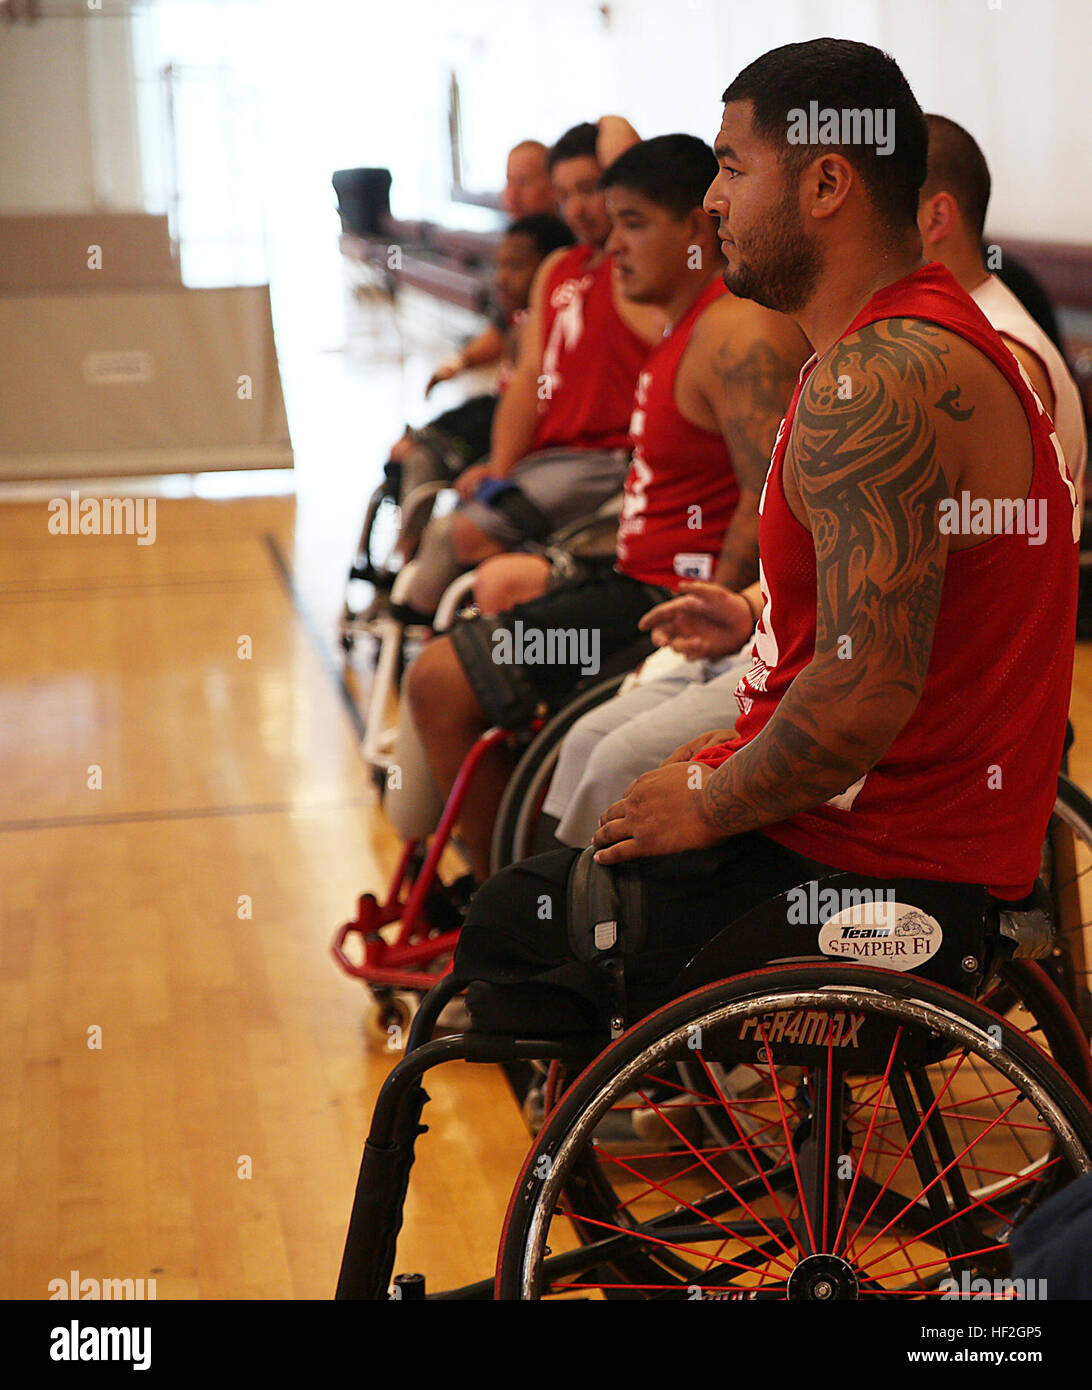 Cpl. Jorge Salazar from Delano, California, waits to begin practice with his teammates for the Marine team, Sept. - Stock Image